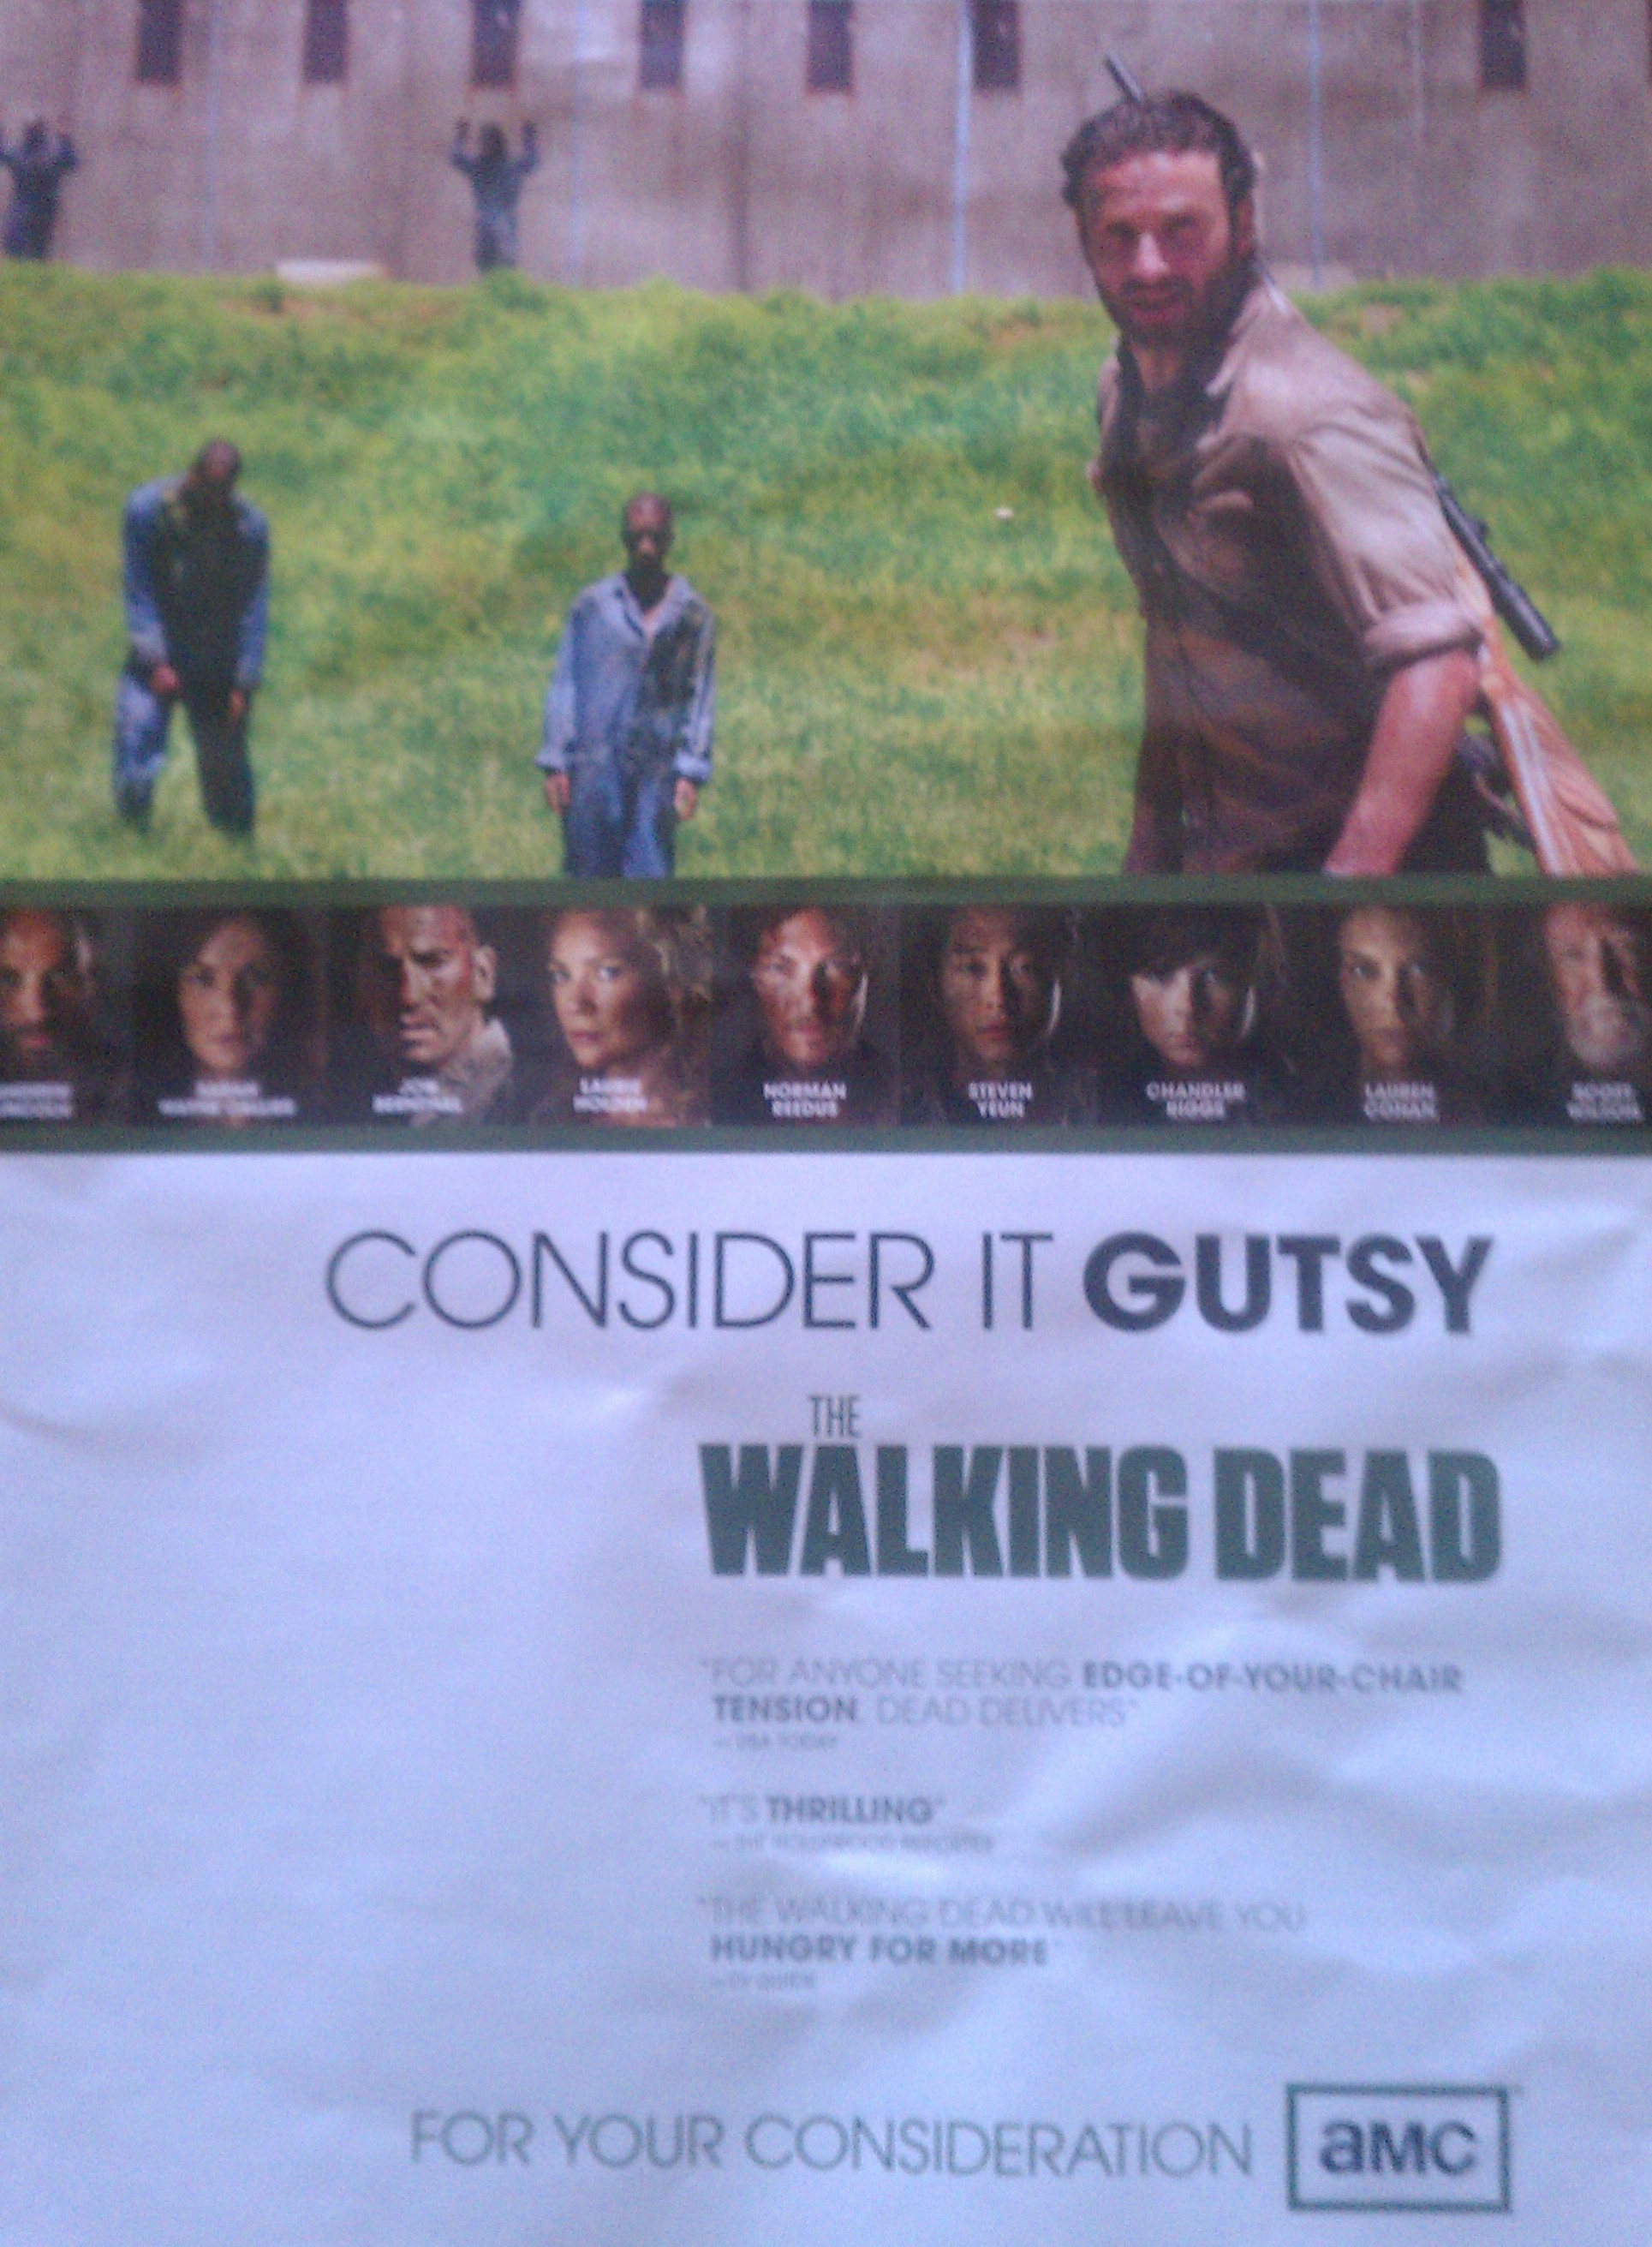 Consider It Gutsy in My Zombies Blog